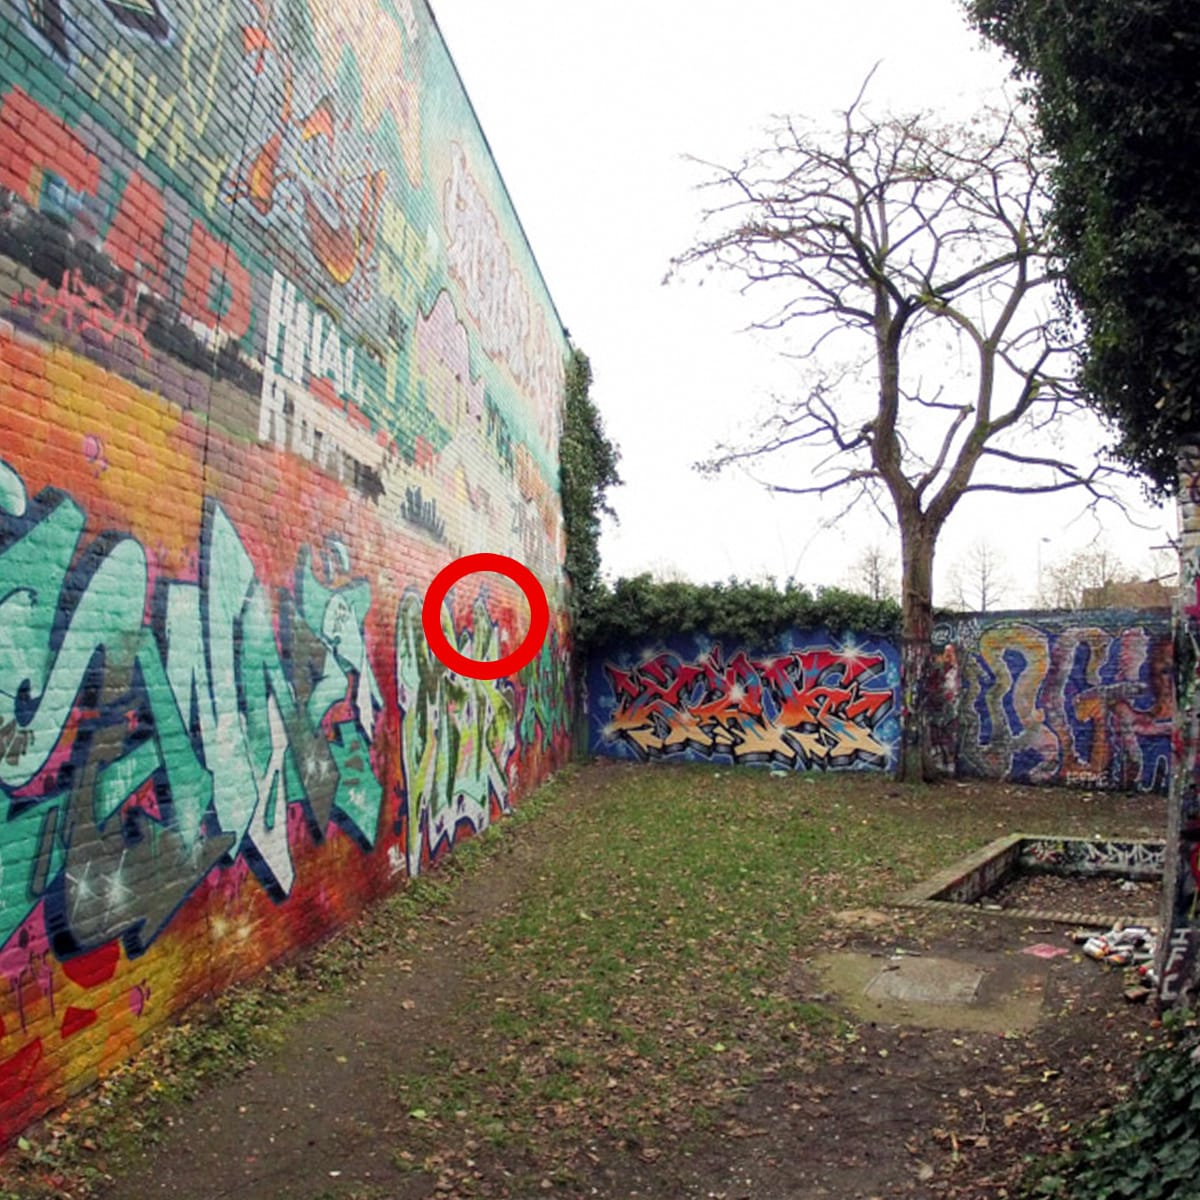 Featured image for Art Attack: See What Happens When You Peel Off 30 Years of Graffiti